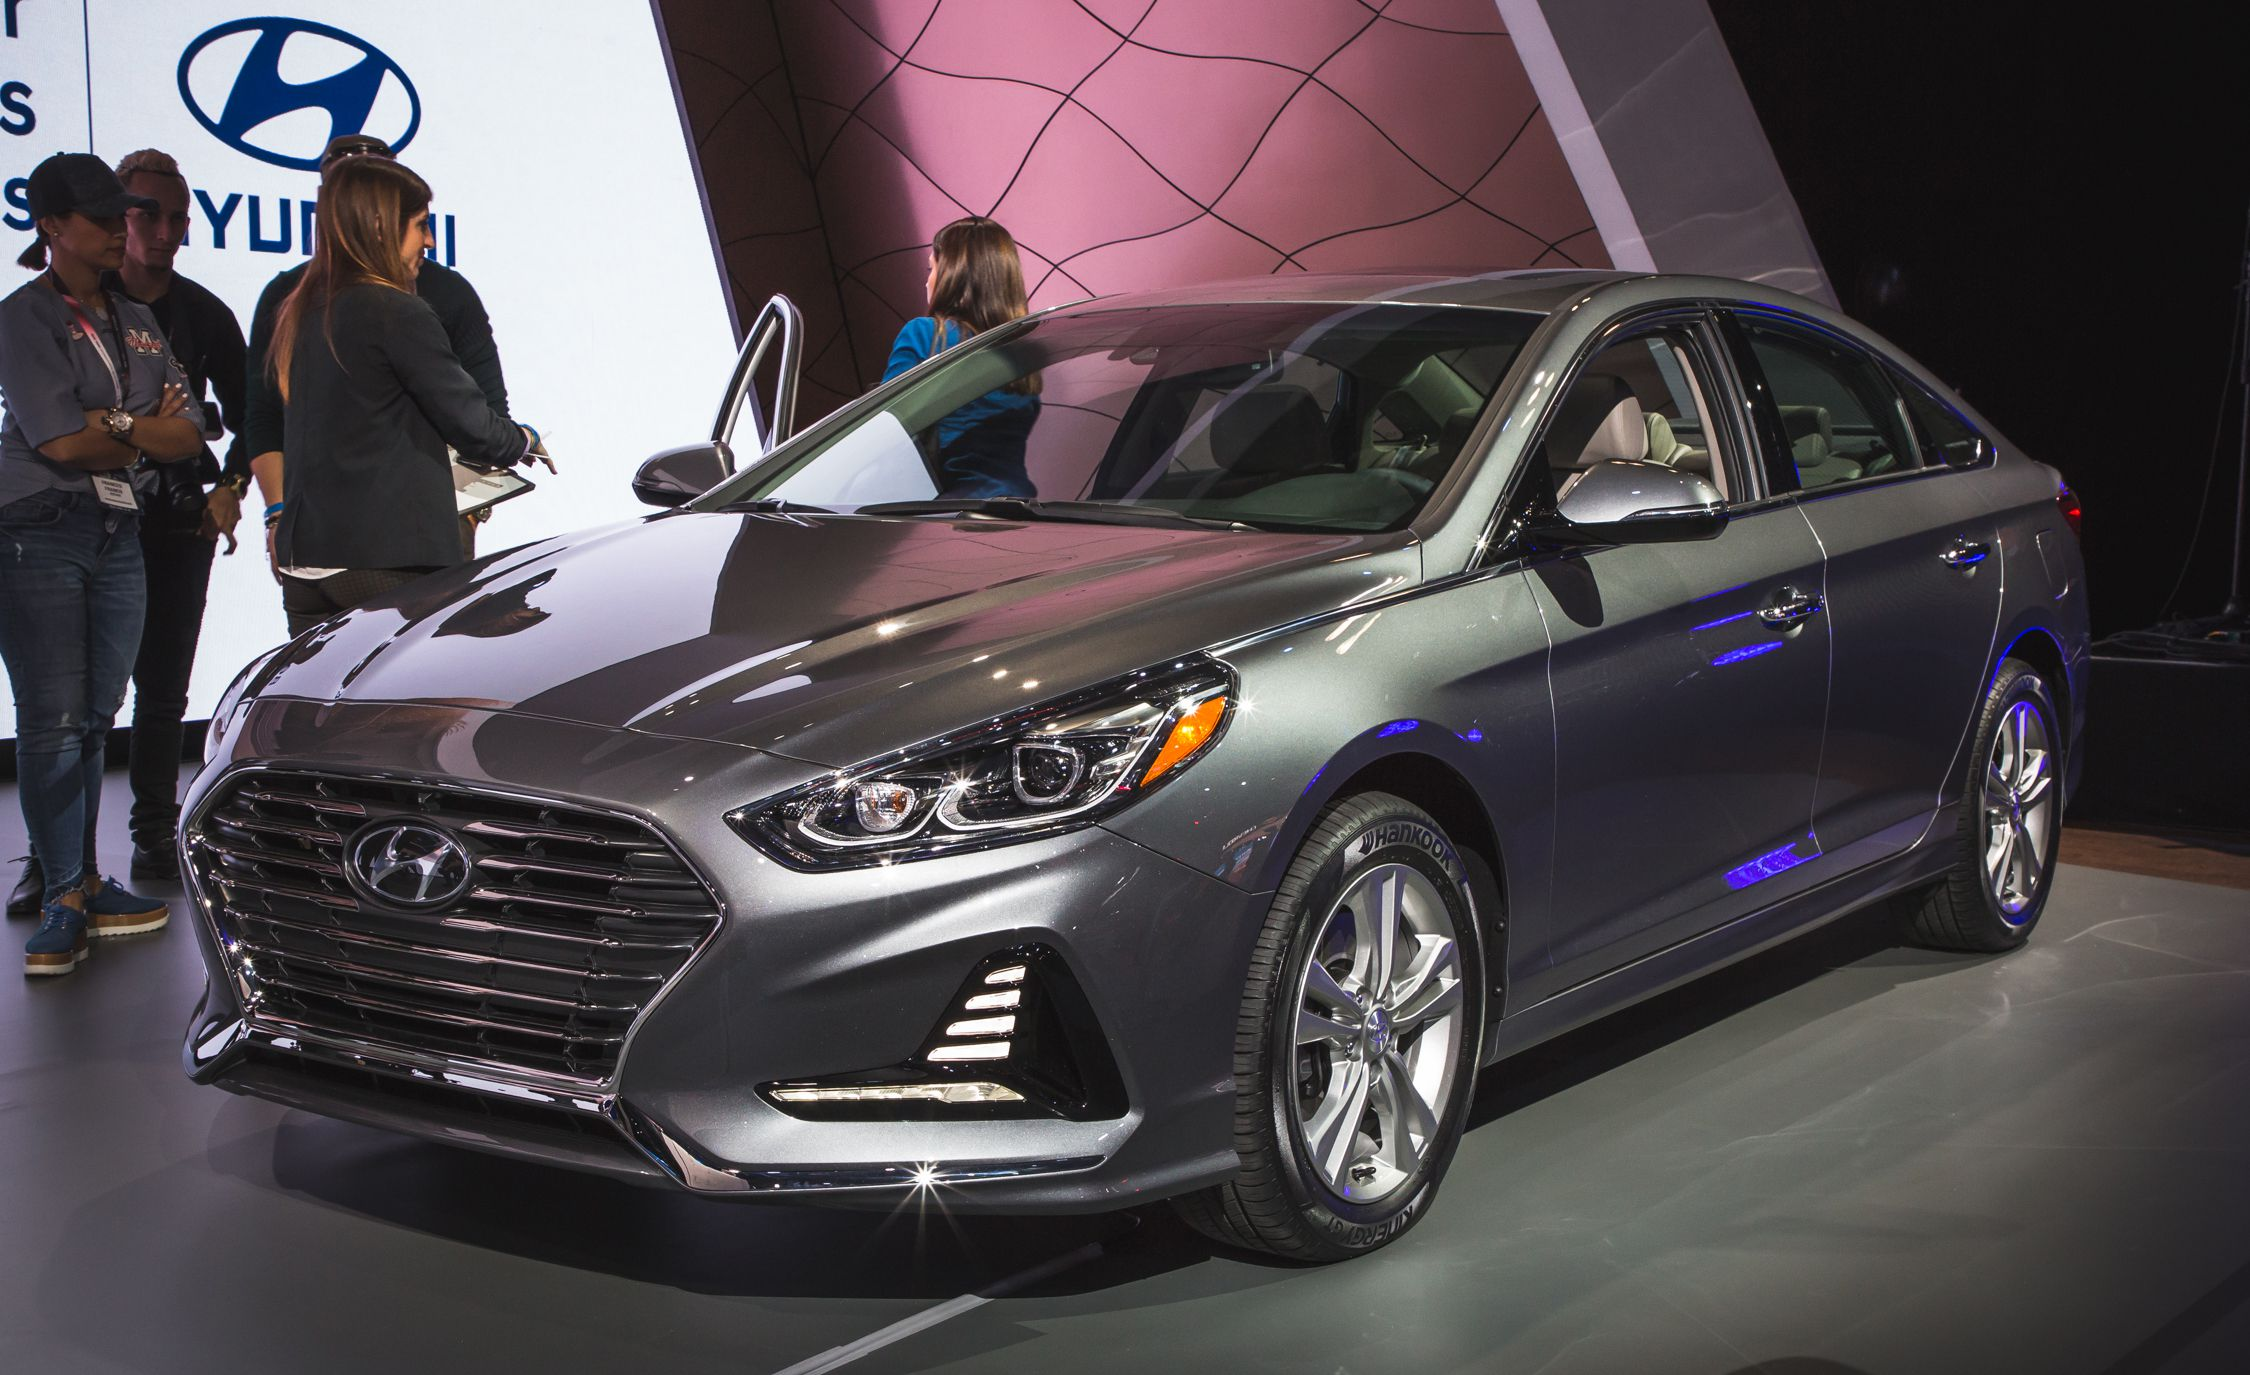 2018-hyundai-sonata-photos-and-info-news-car-and-driver-photo-679010-s-original